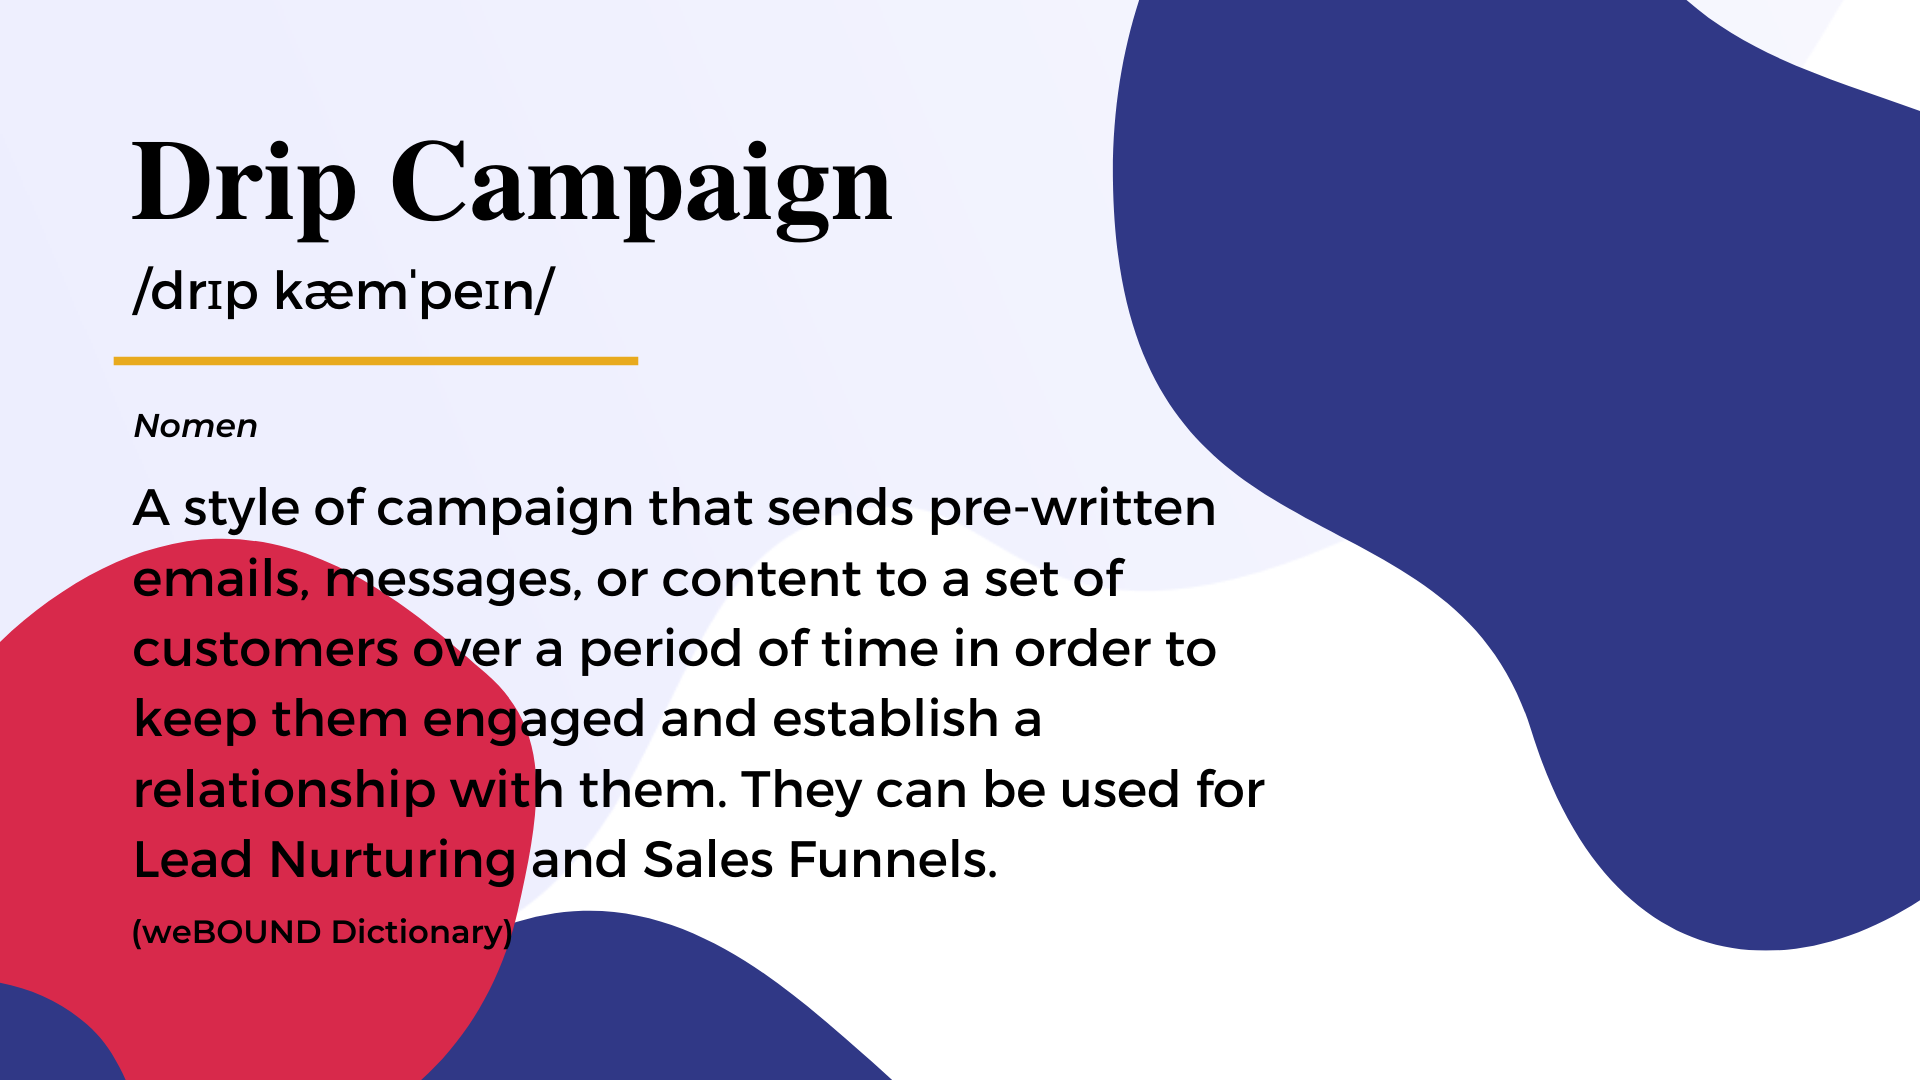 A campaign style that sends pre-written emails, messages, or content to a range of customers over a period of time in order to entertain and develop a relationship with them. This can be used for sales funnels.